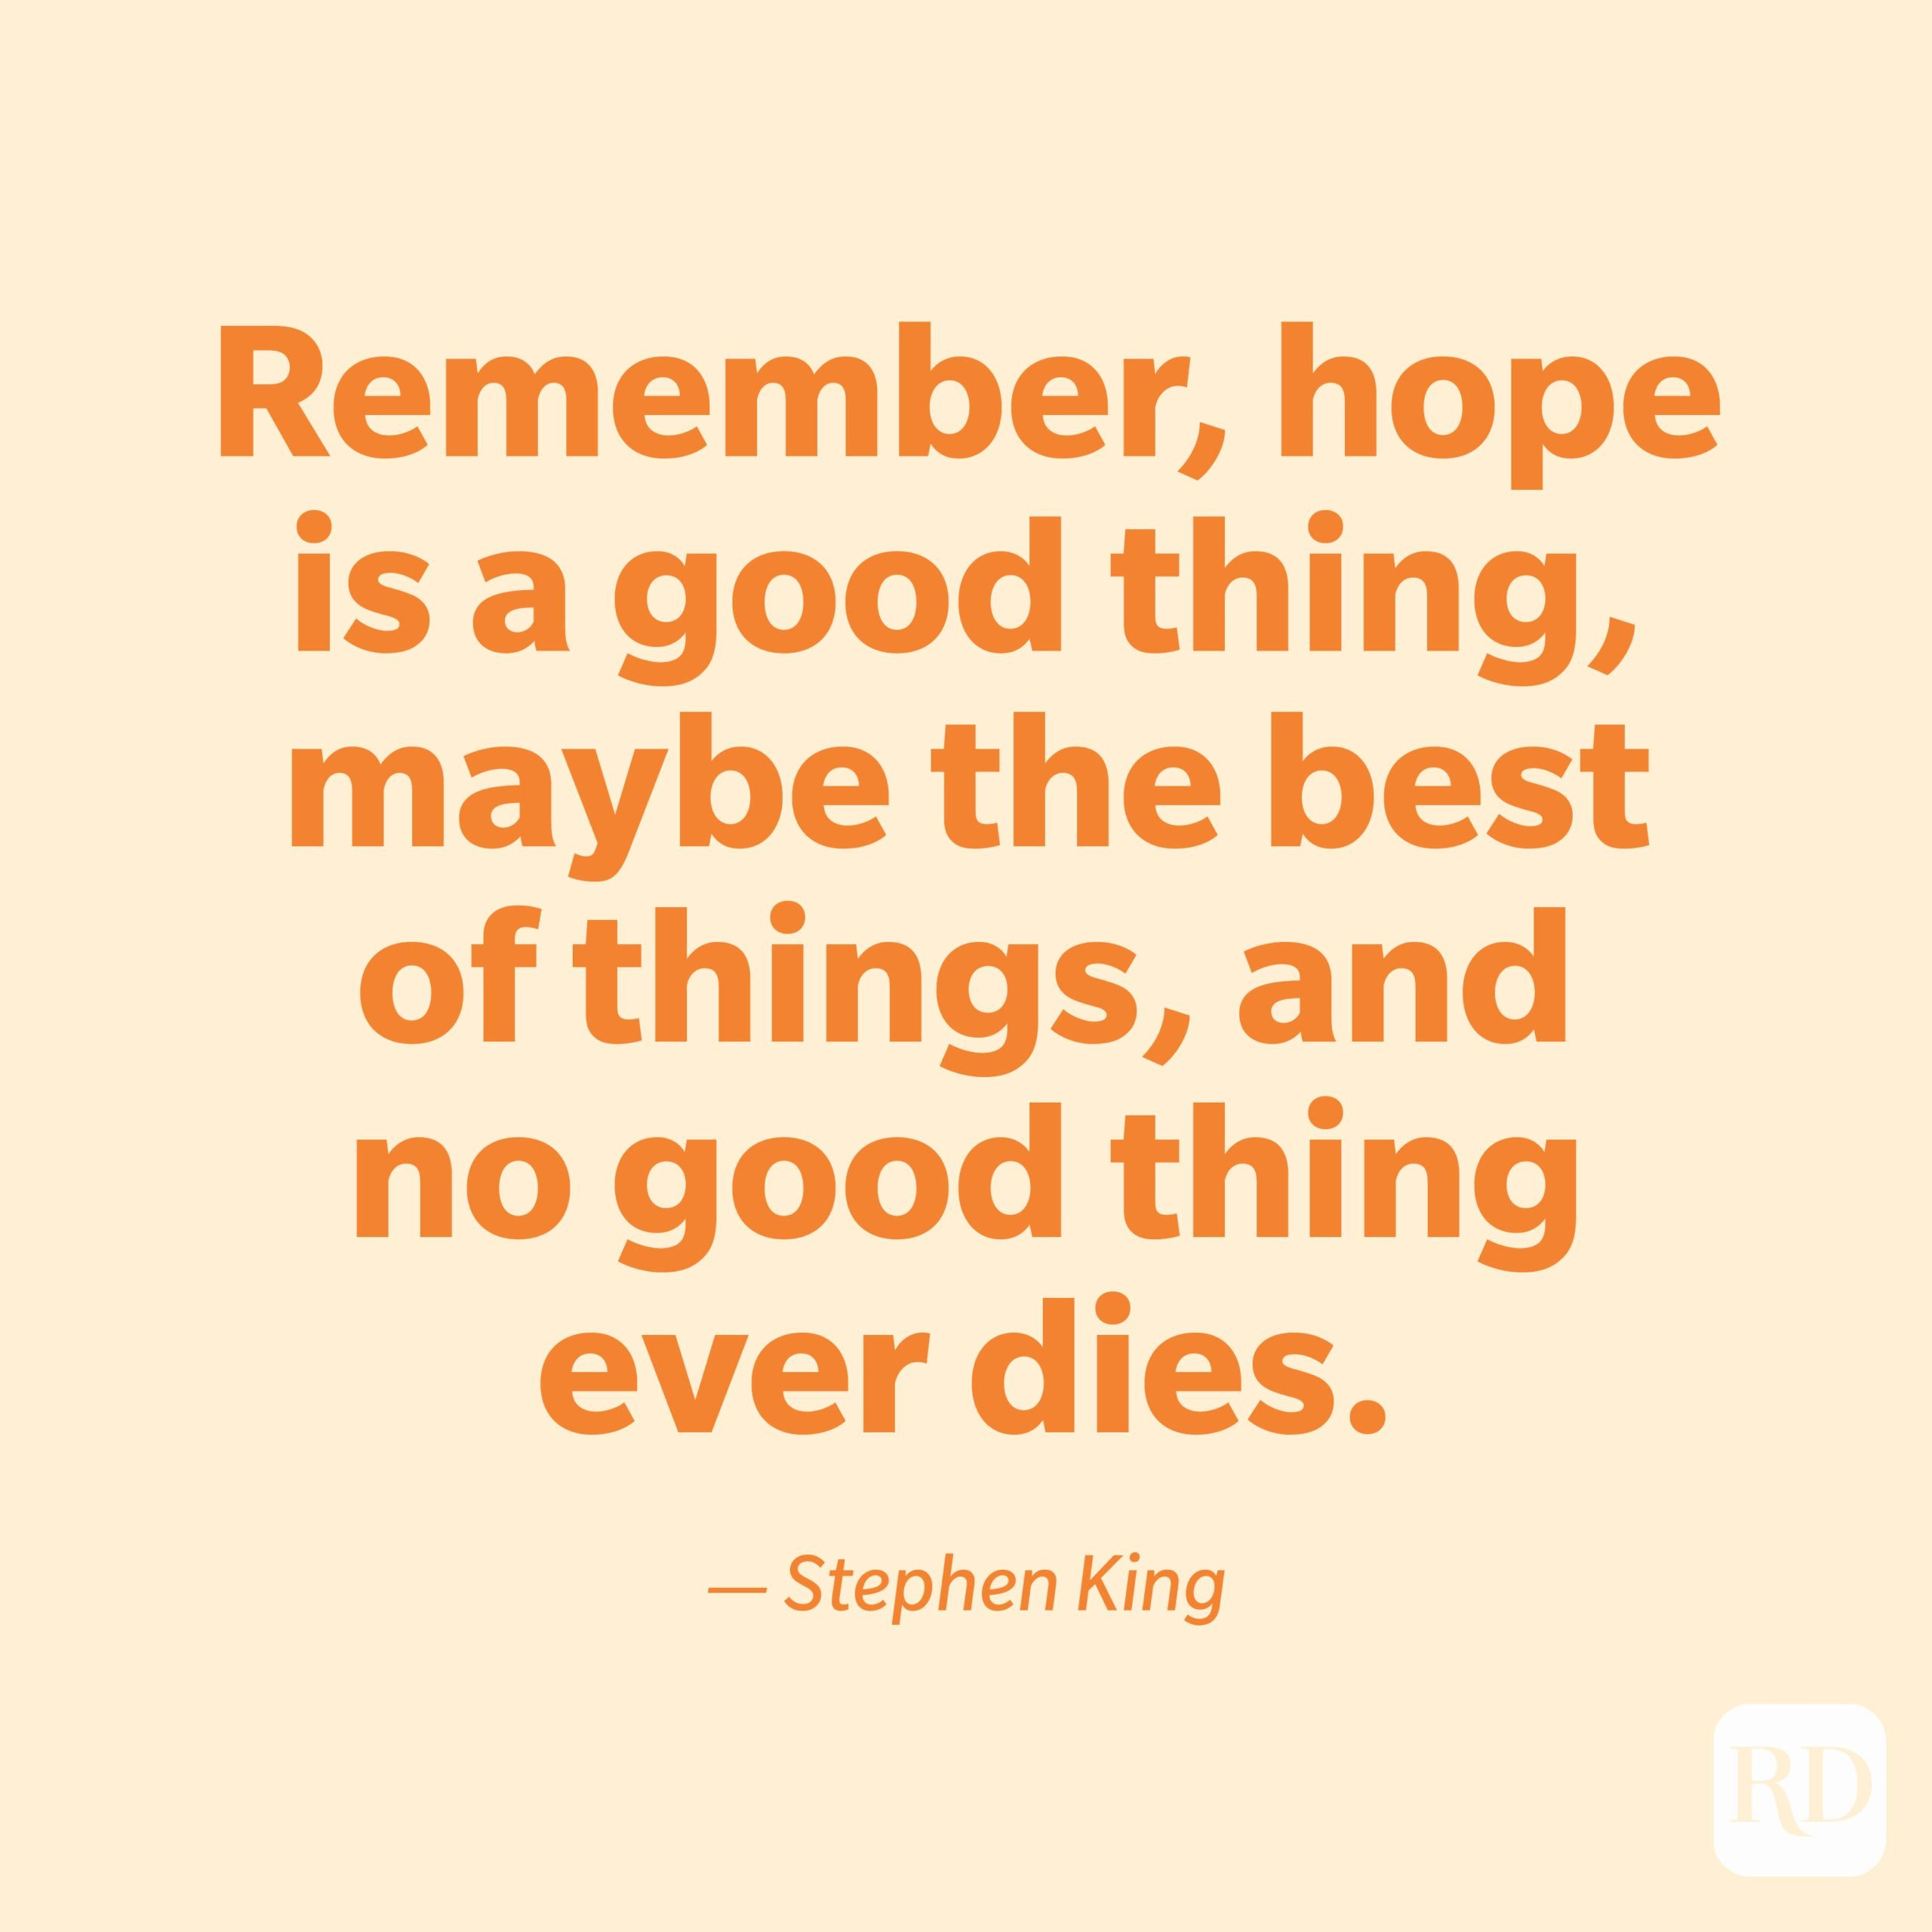 """""""Remember, hope is a good thing, maybe the best of things, and no good thing ever dies."""" —Stephen King."""